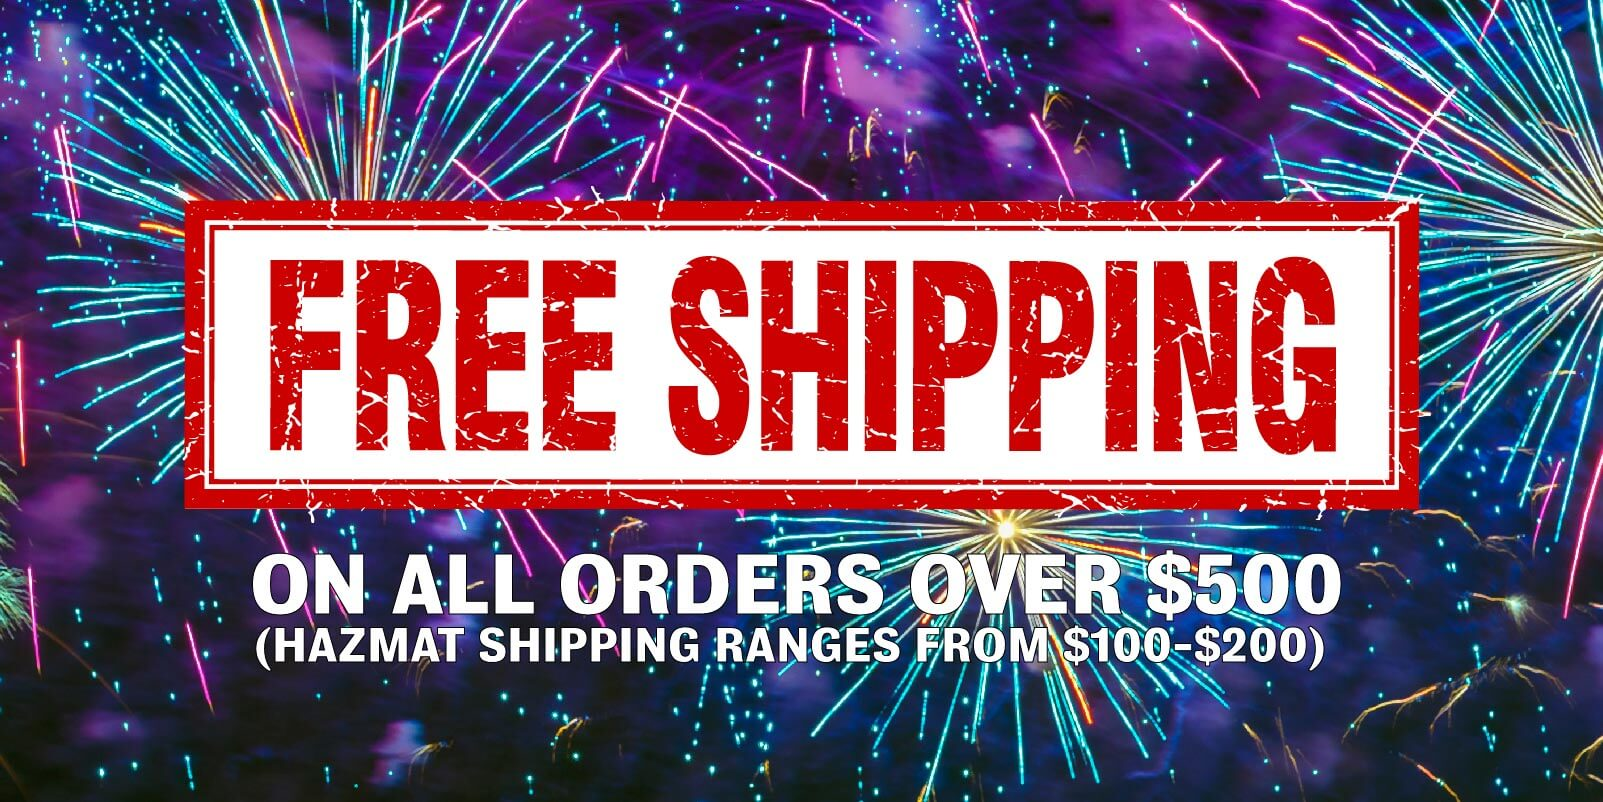 Free shipping when you spend over $500 at Intergalactic Fireworks. Order online anytime!